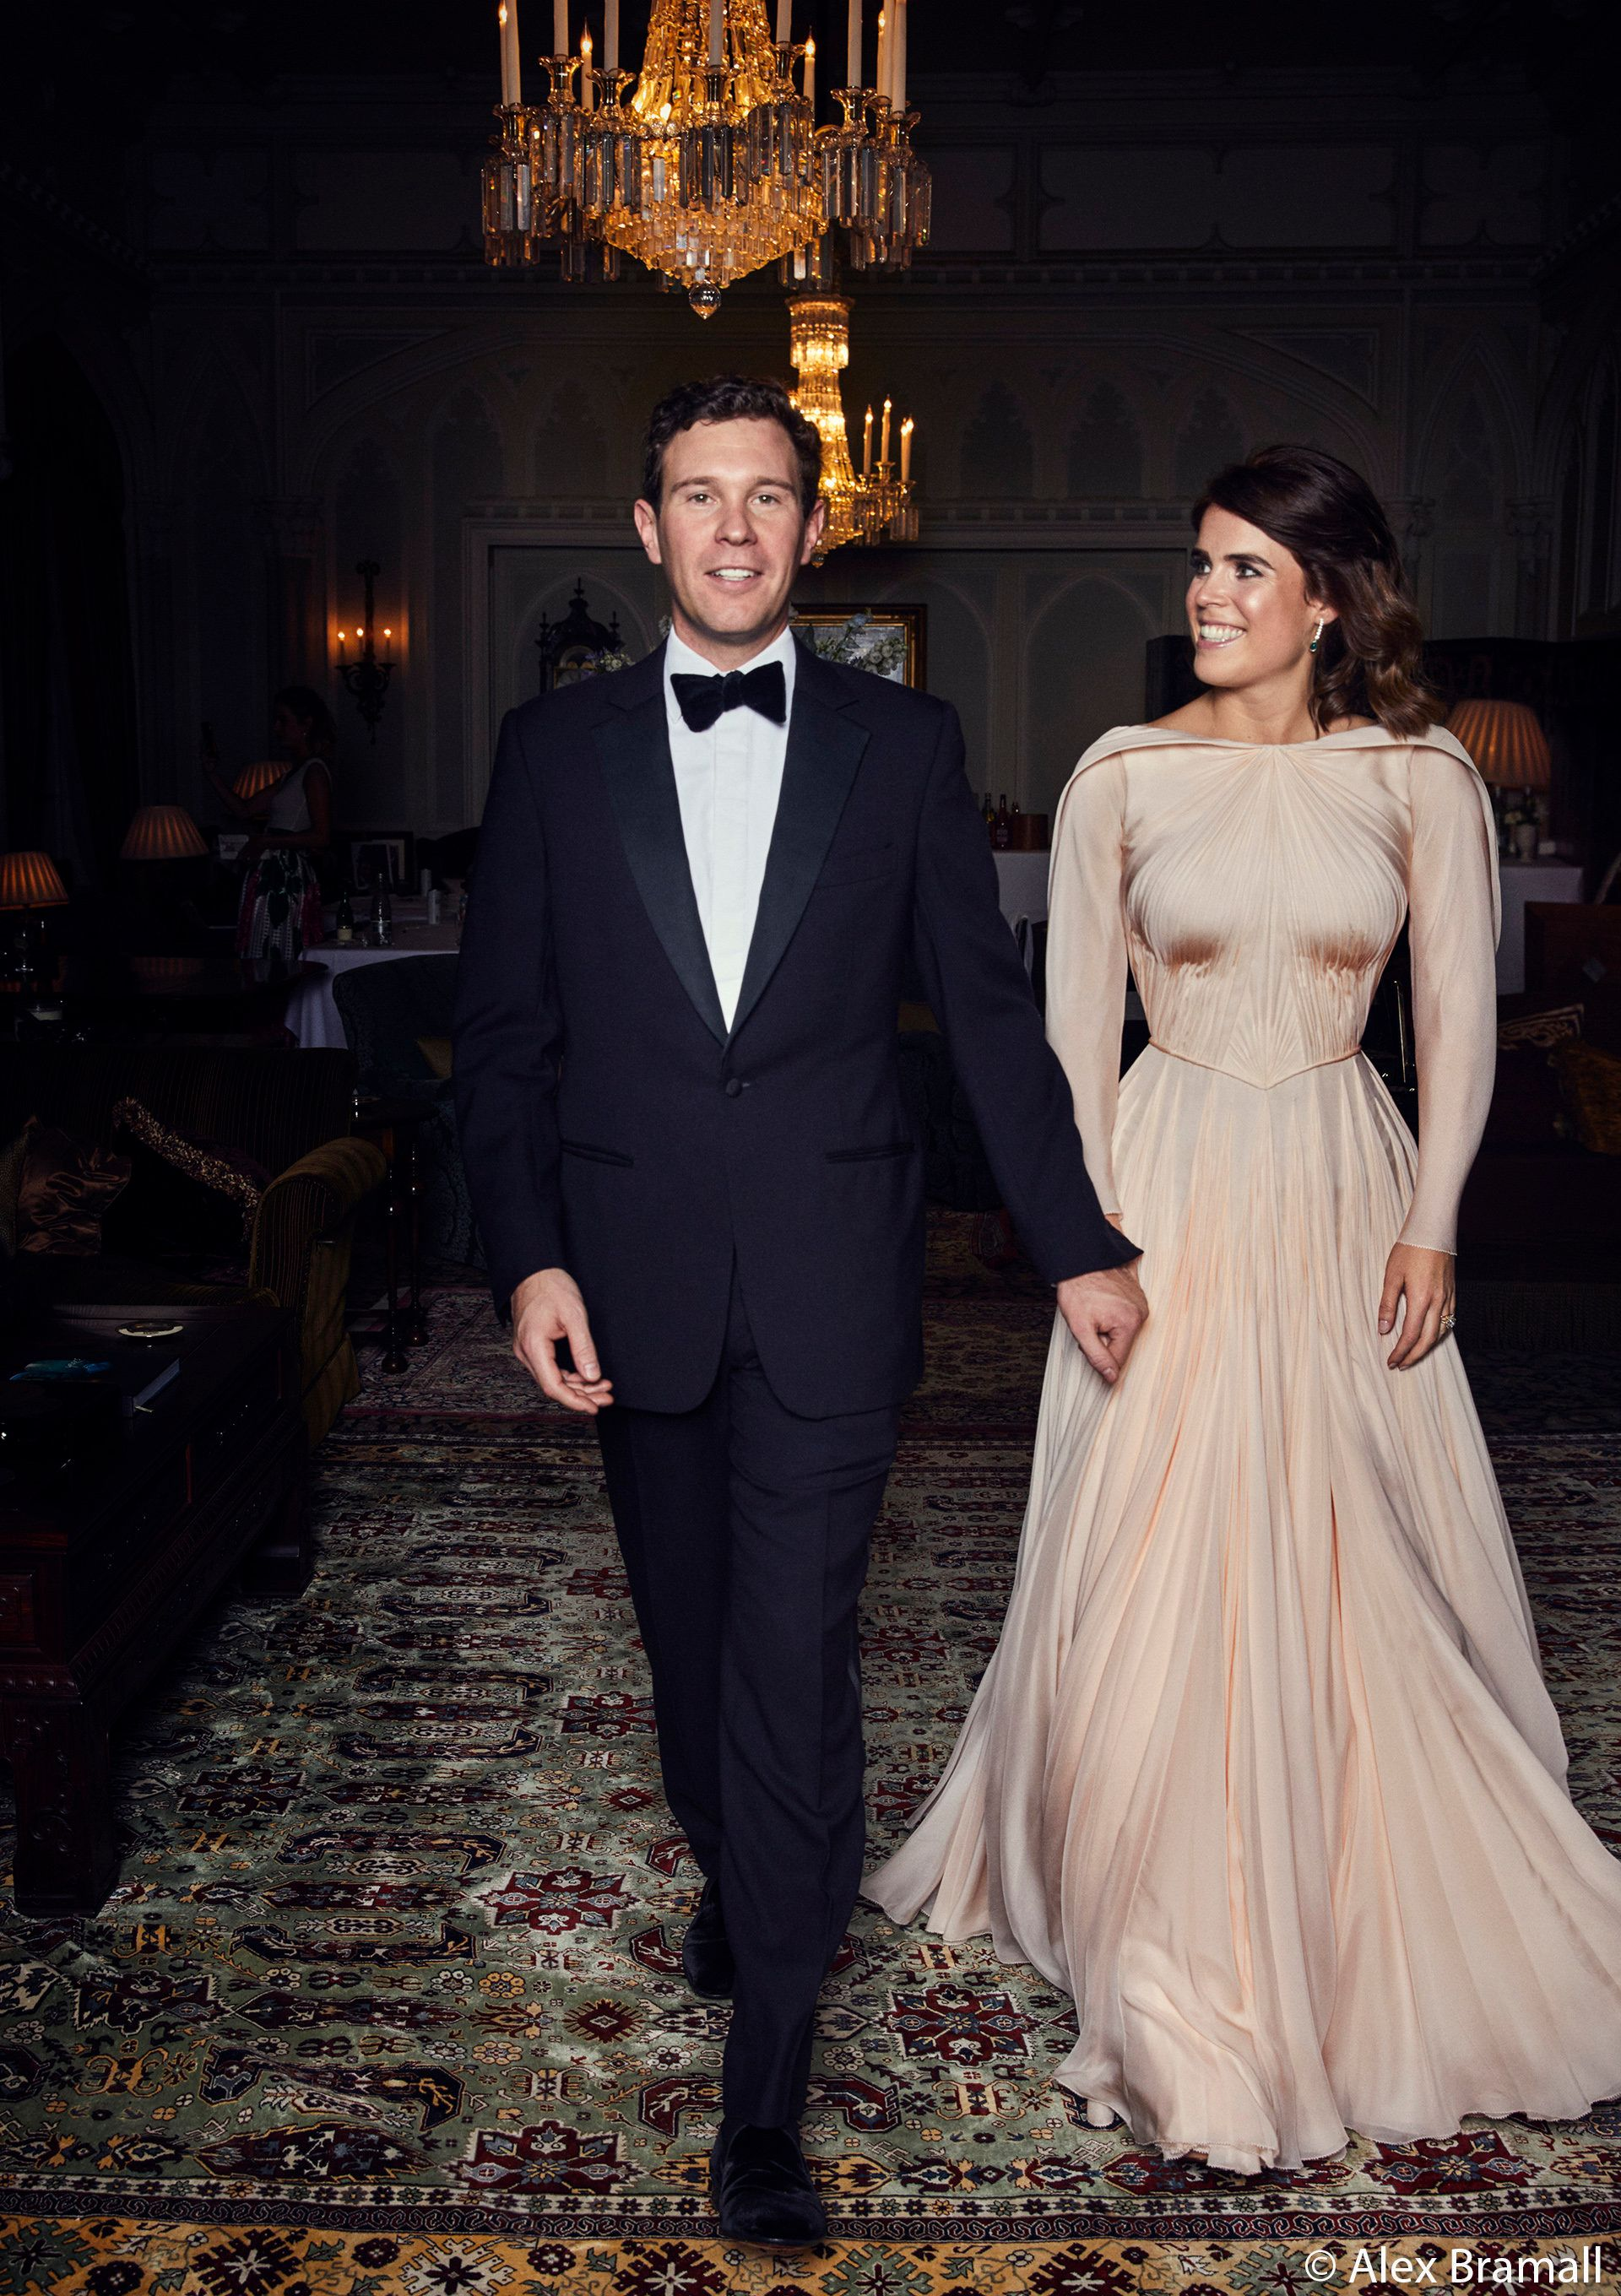 JackBrooksbank and Princess Eugenie of York arrive at the Royal Lodge in Windsor for a dinner the evening of their wedding.